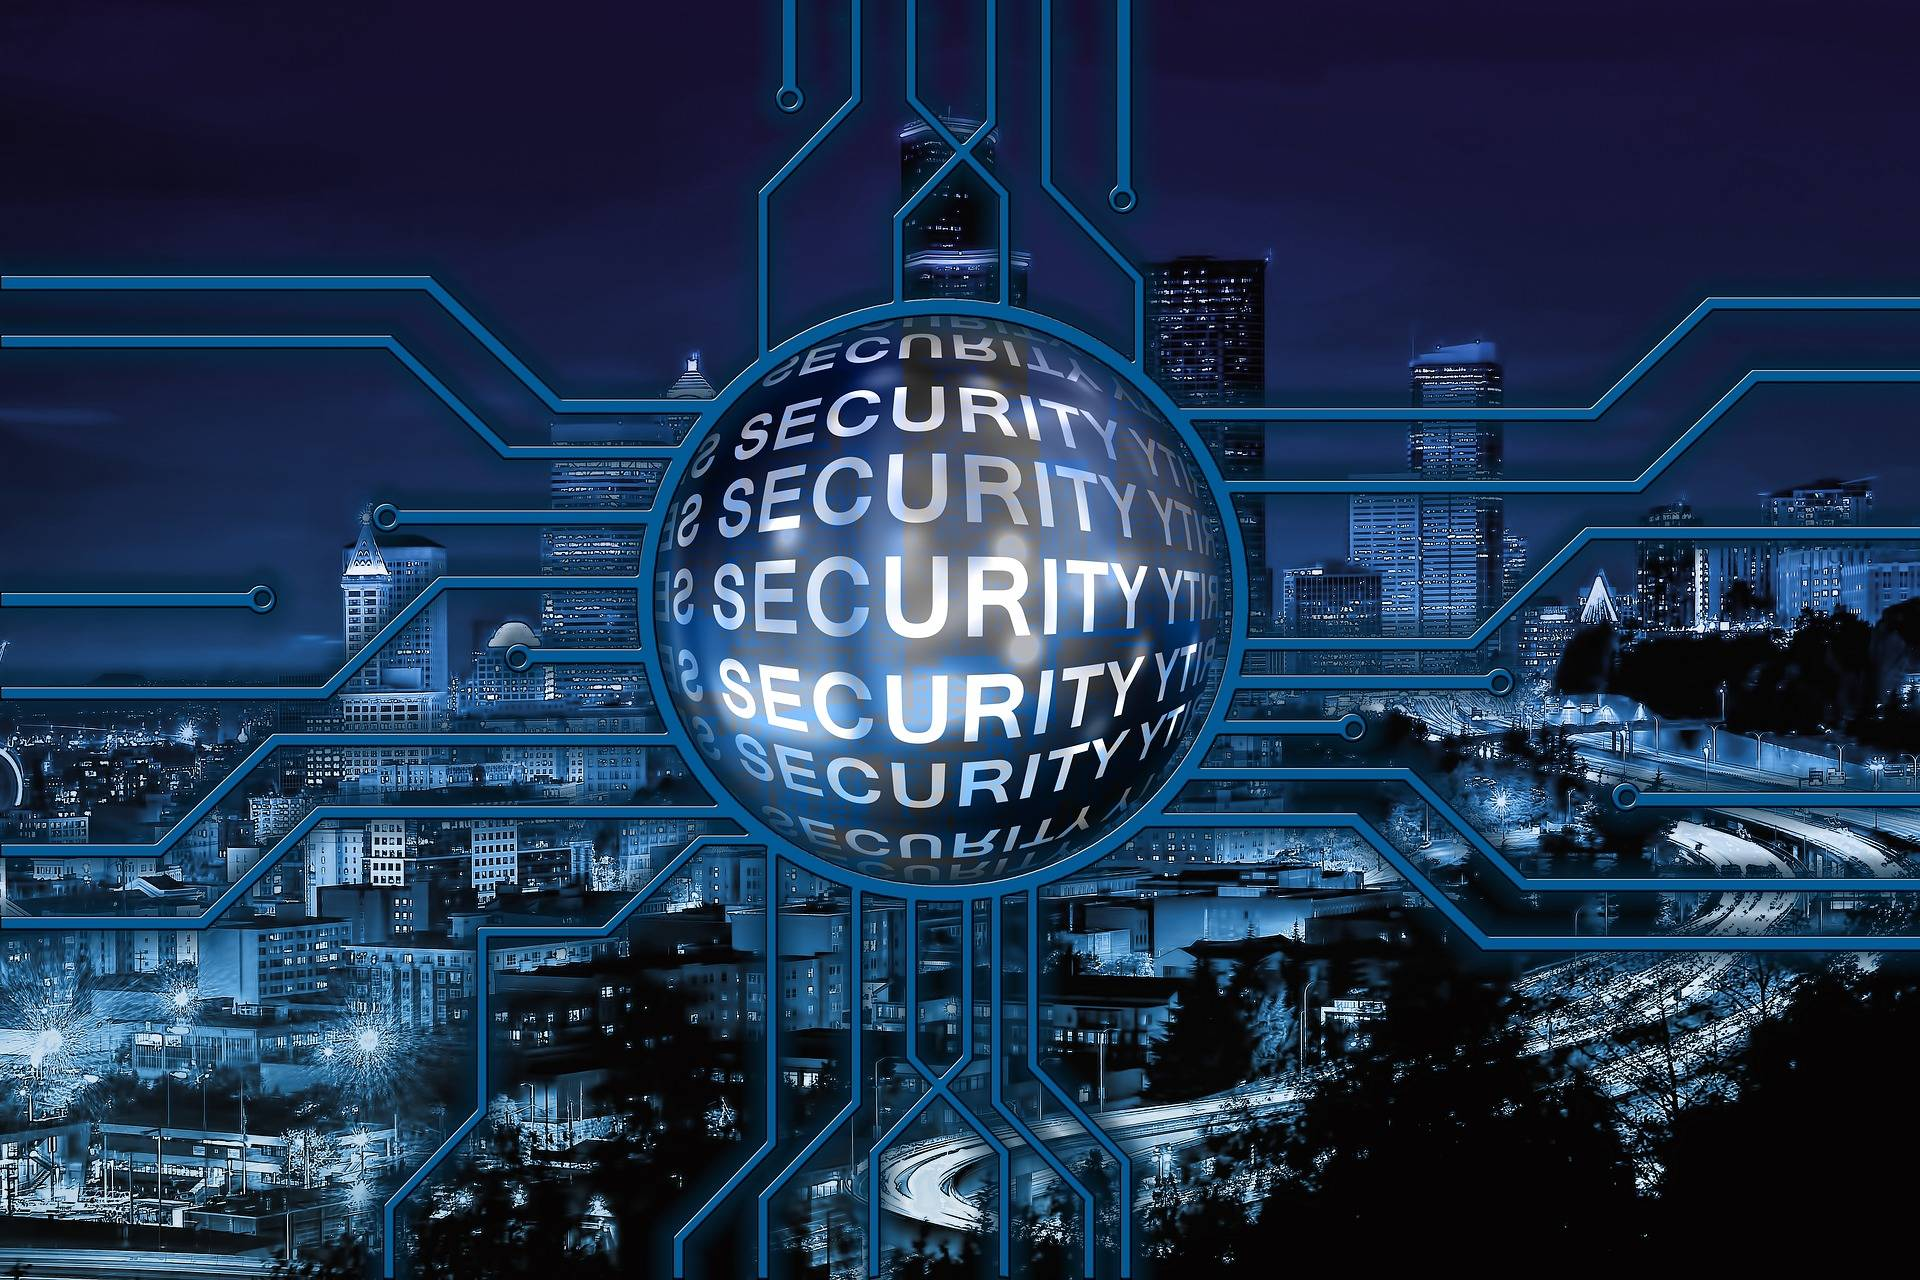 Security Policy Allmedscare